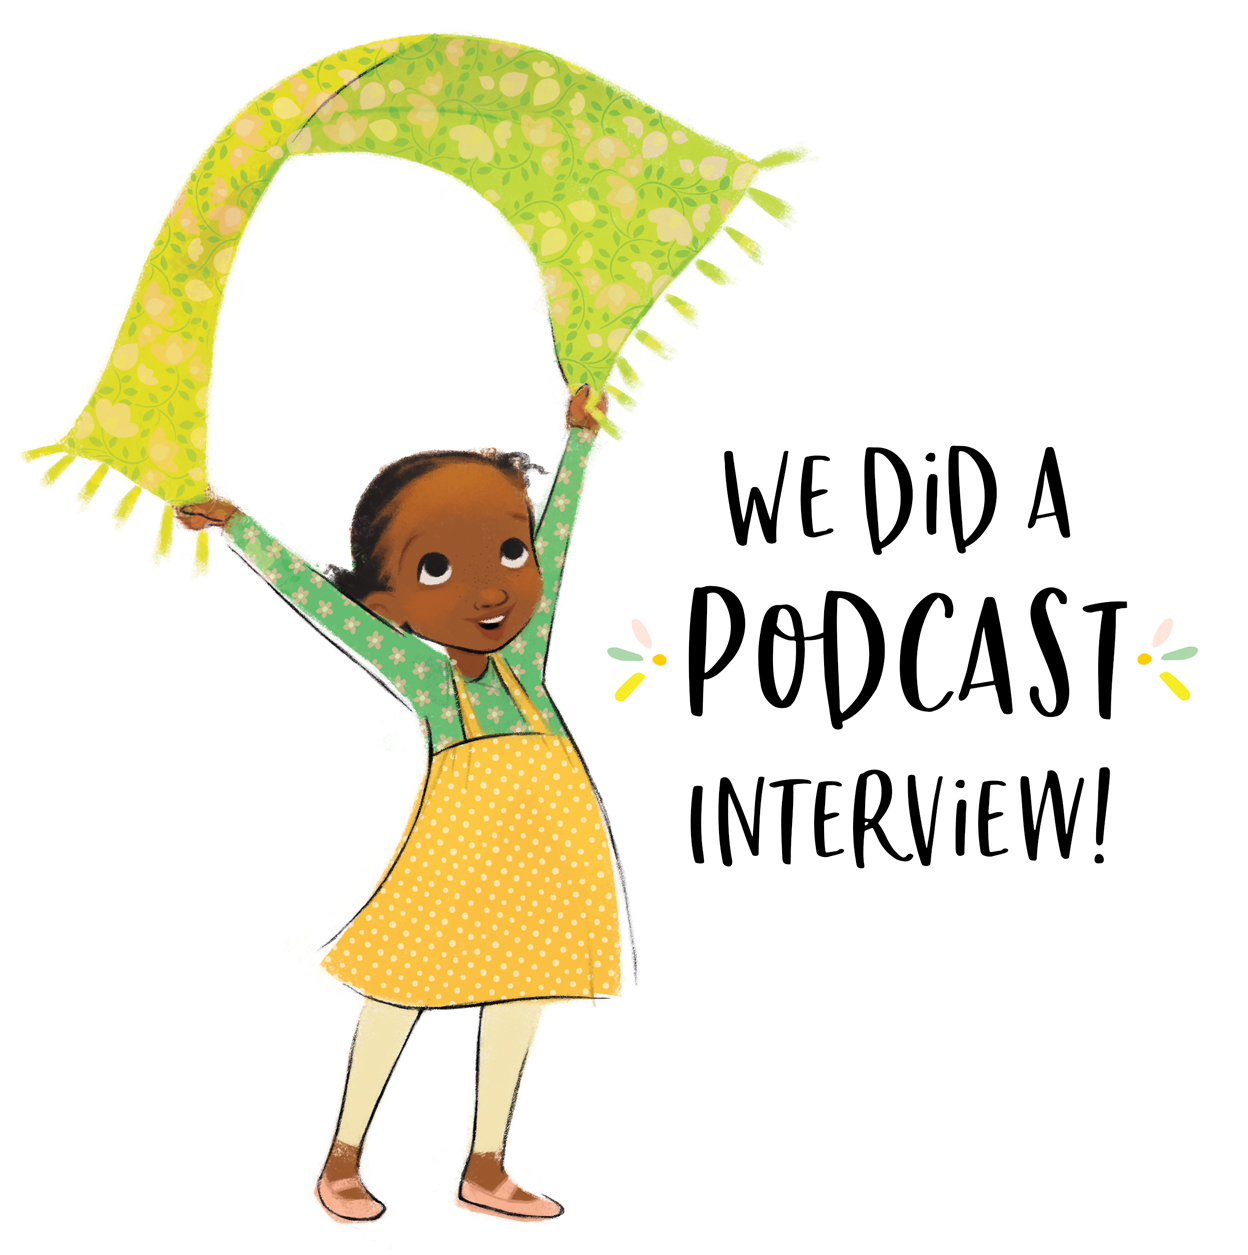 Podcast-Interview-illo.jpg